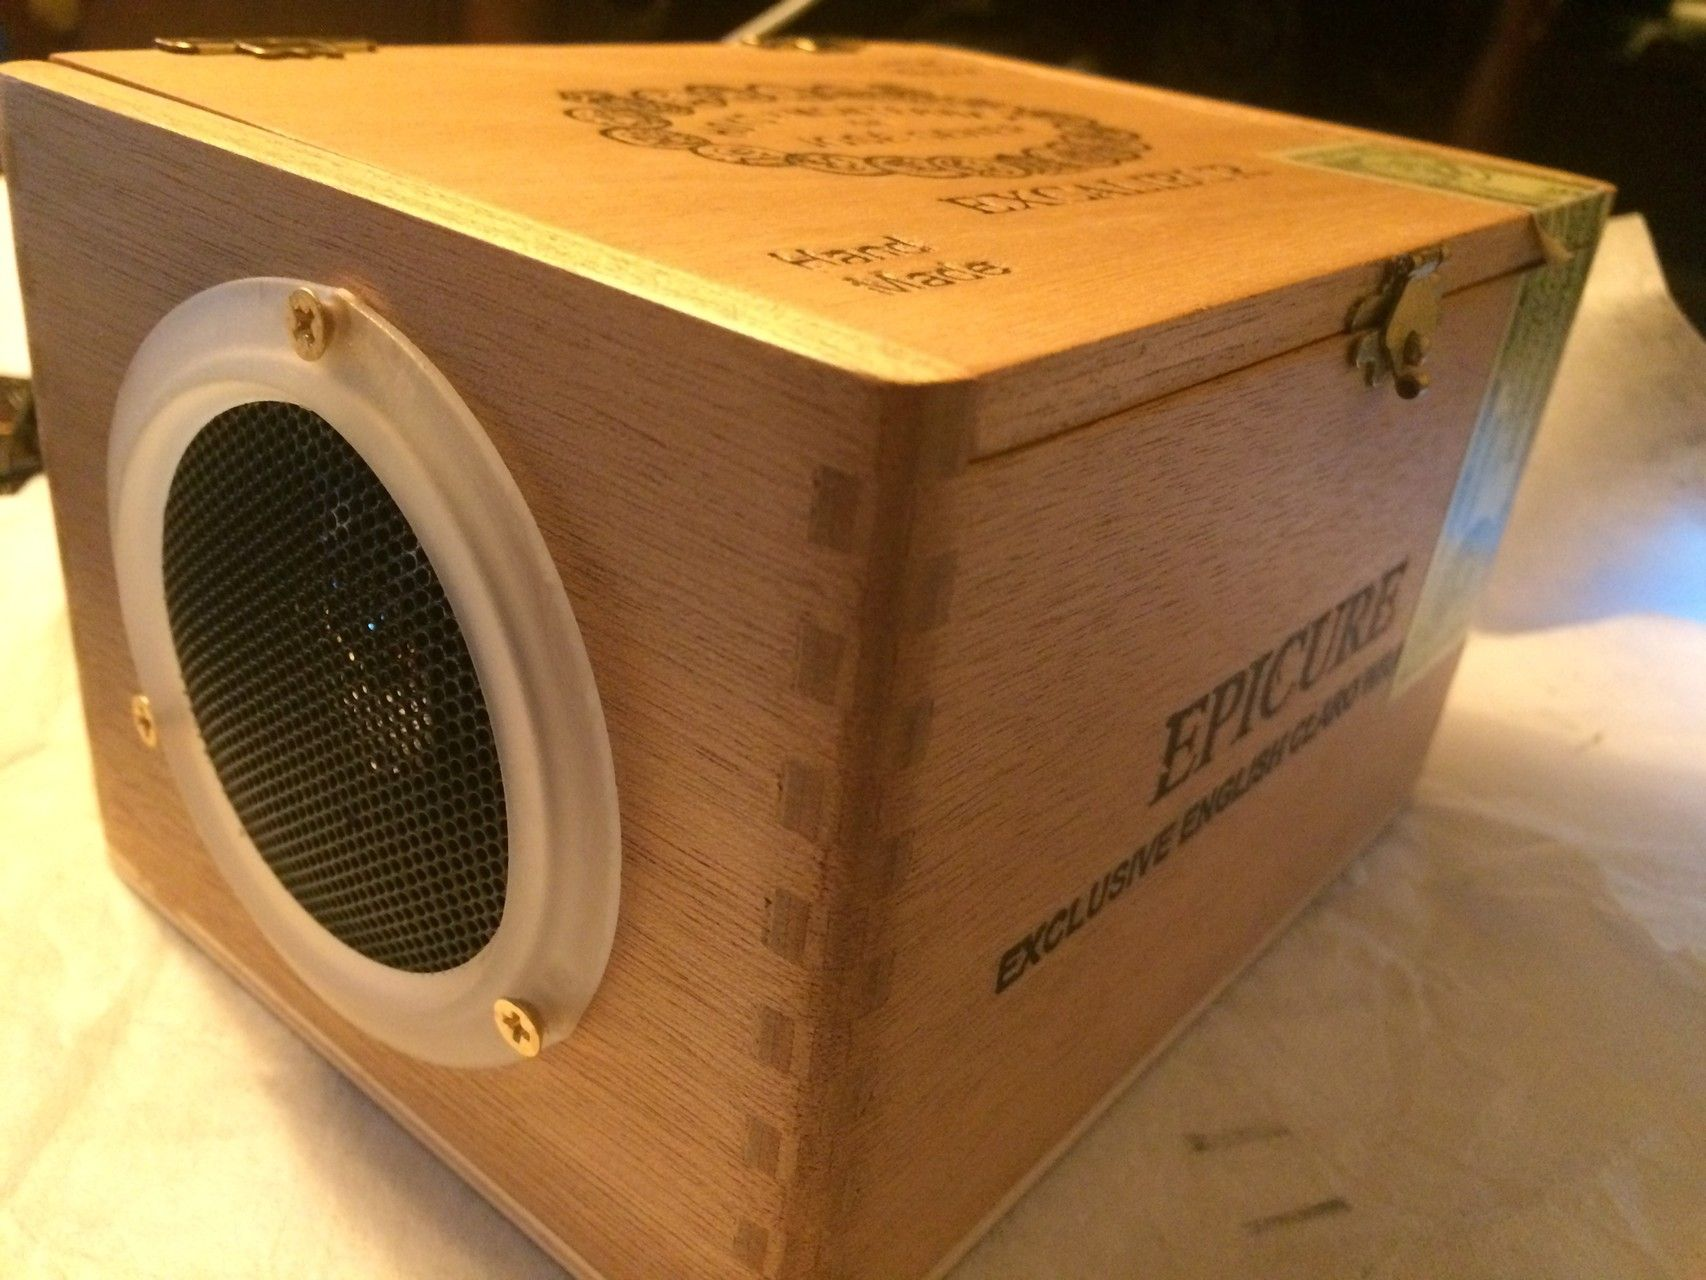 4 cigar box speaker system diy fully customizable with different boxes porting baffles. Black Bedroom Furniture Sets. Home Design Ideas